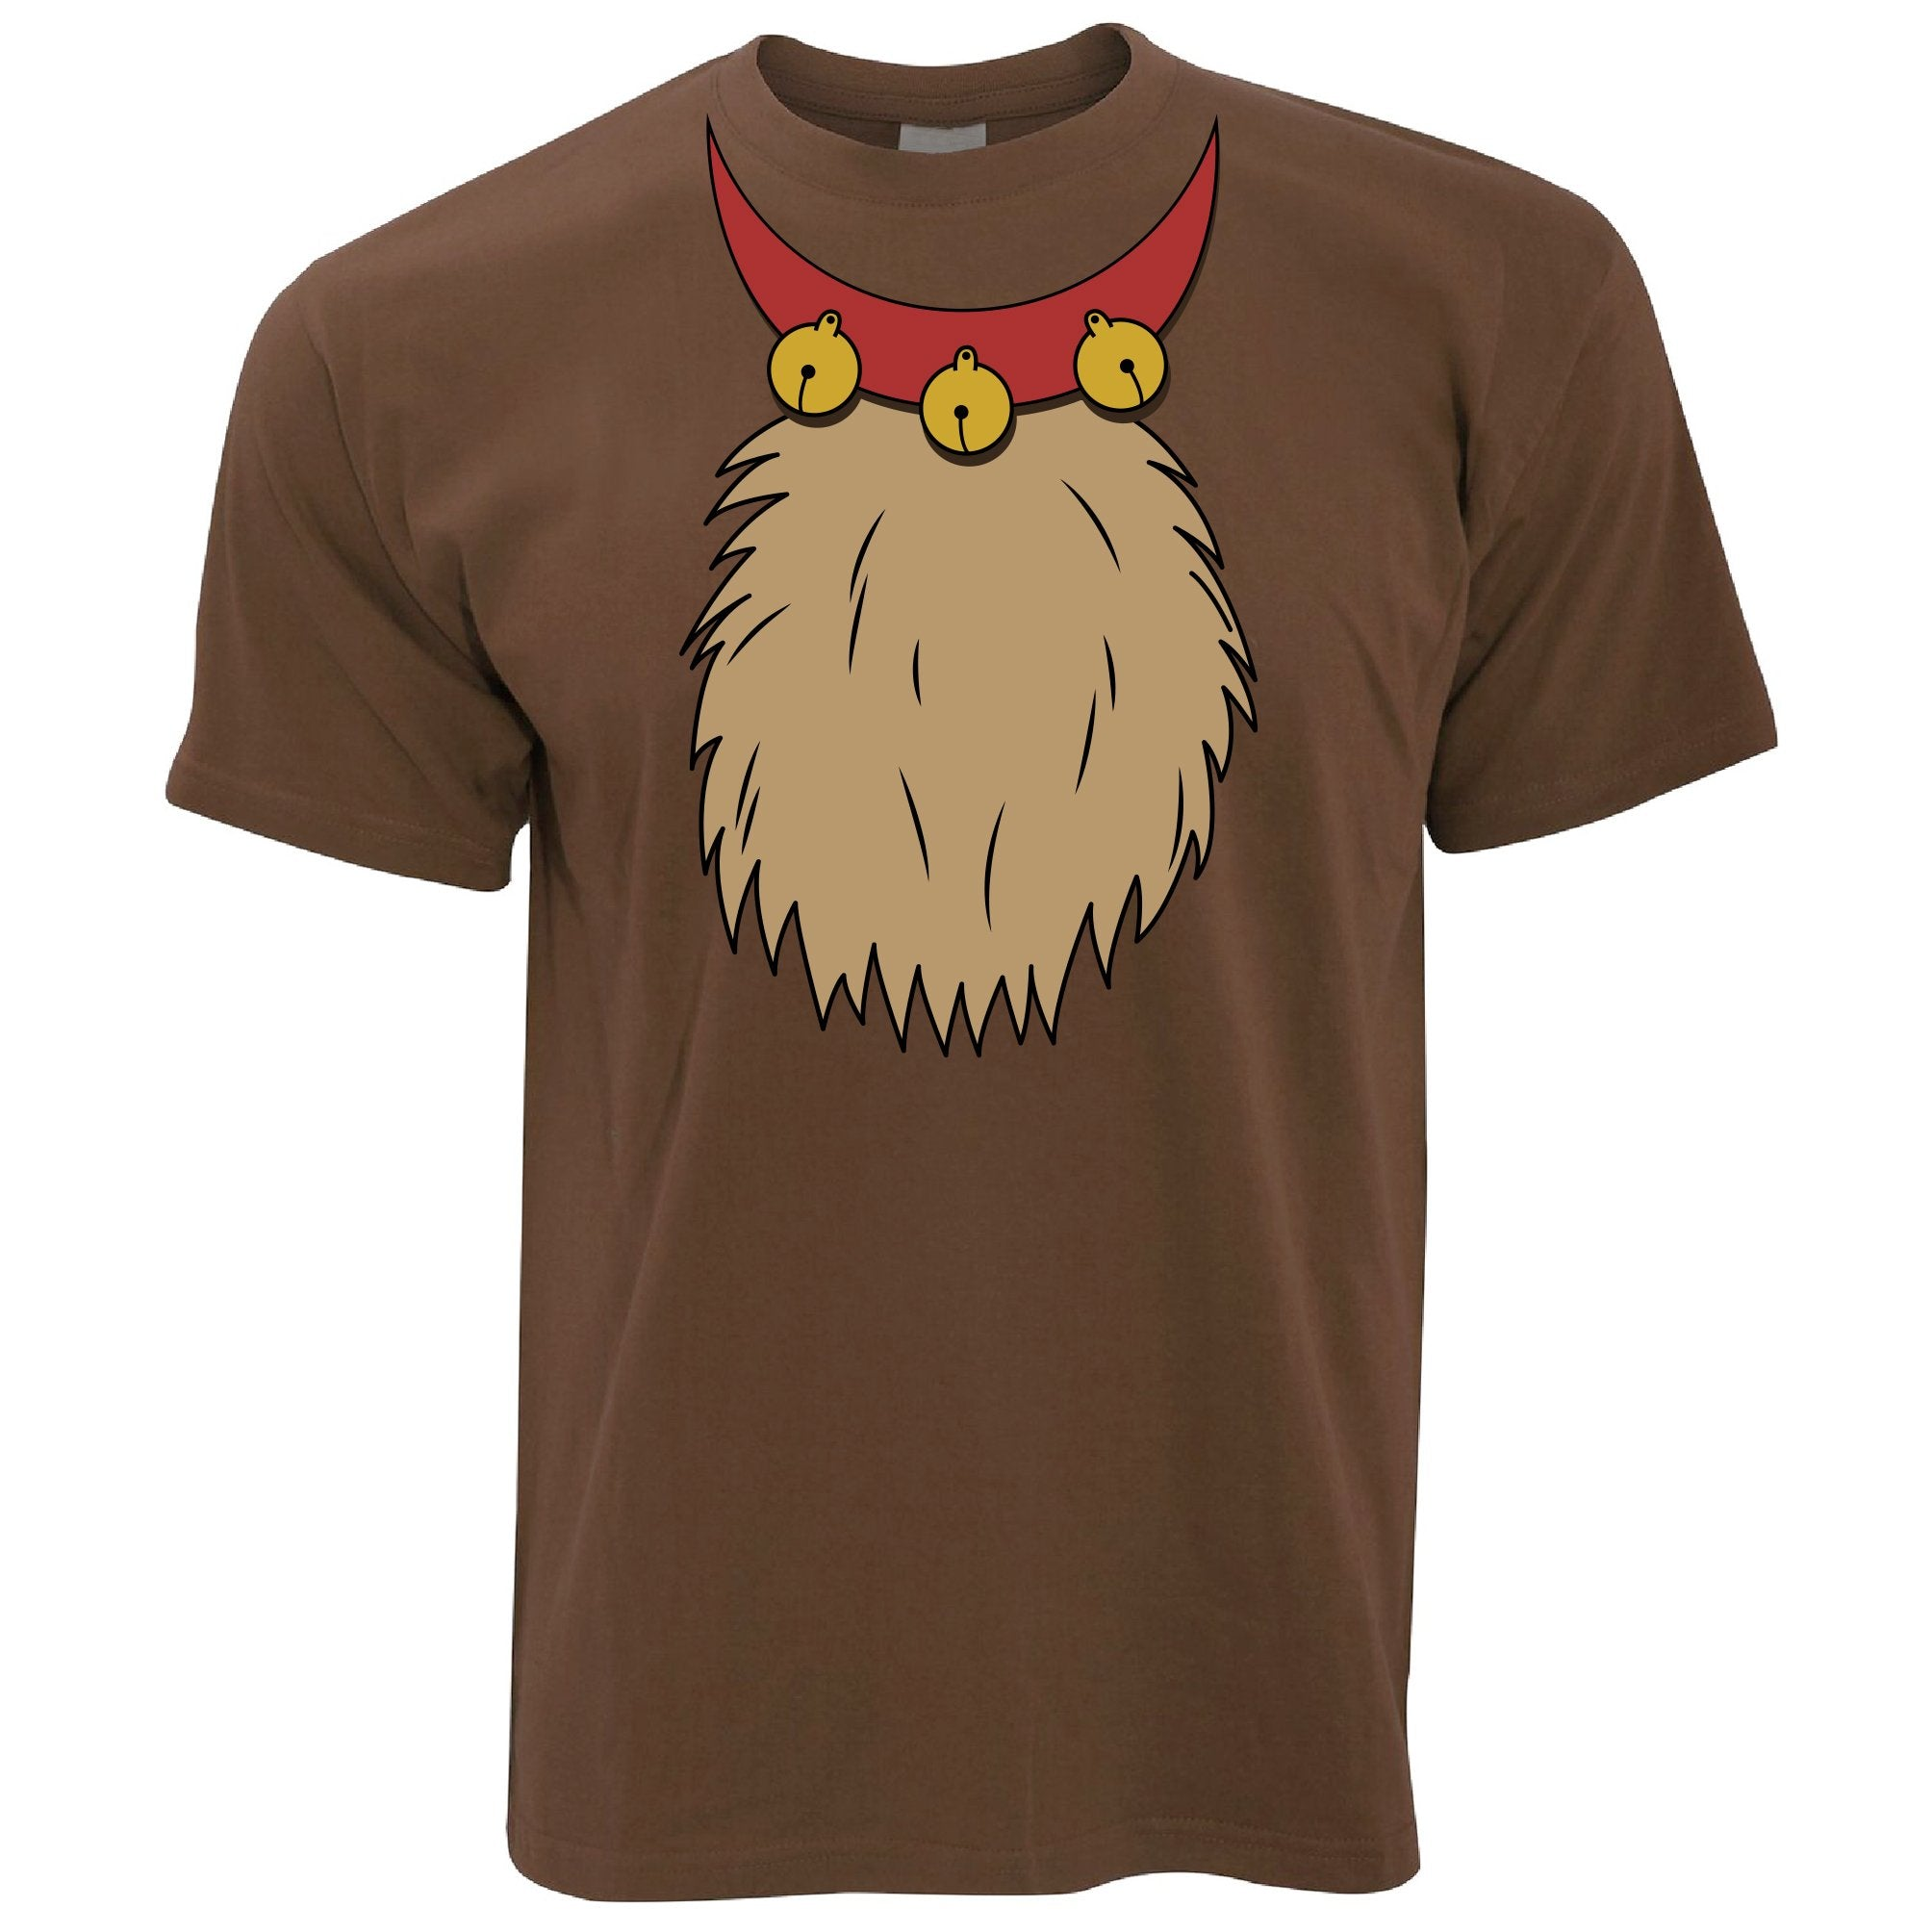 Novelty Christmas T Shirt Rudolf The Reindeer Costume